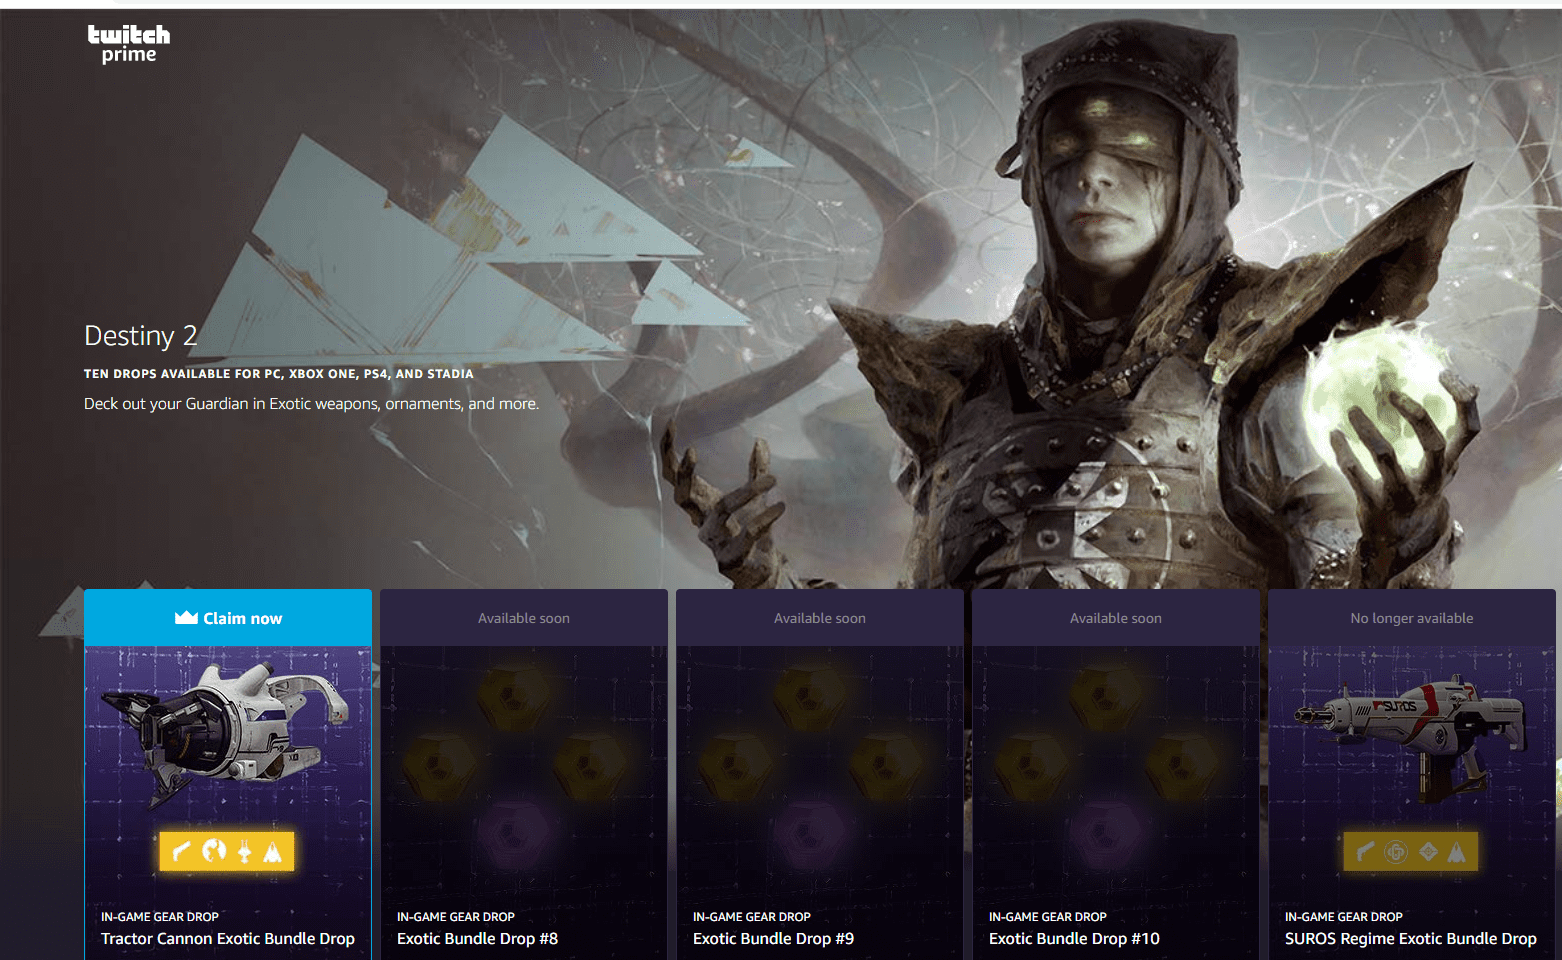 Destiny 8 Twitch Prime Rewards- What are the rewards and how to